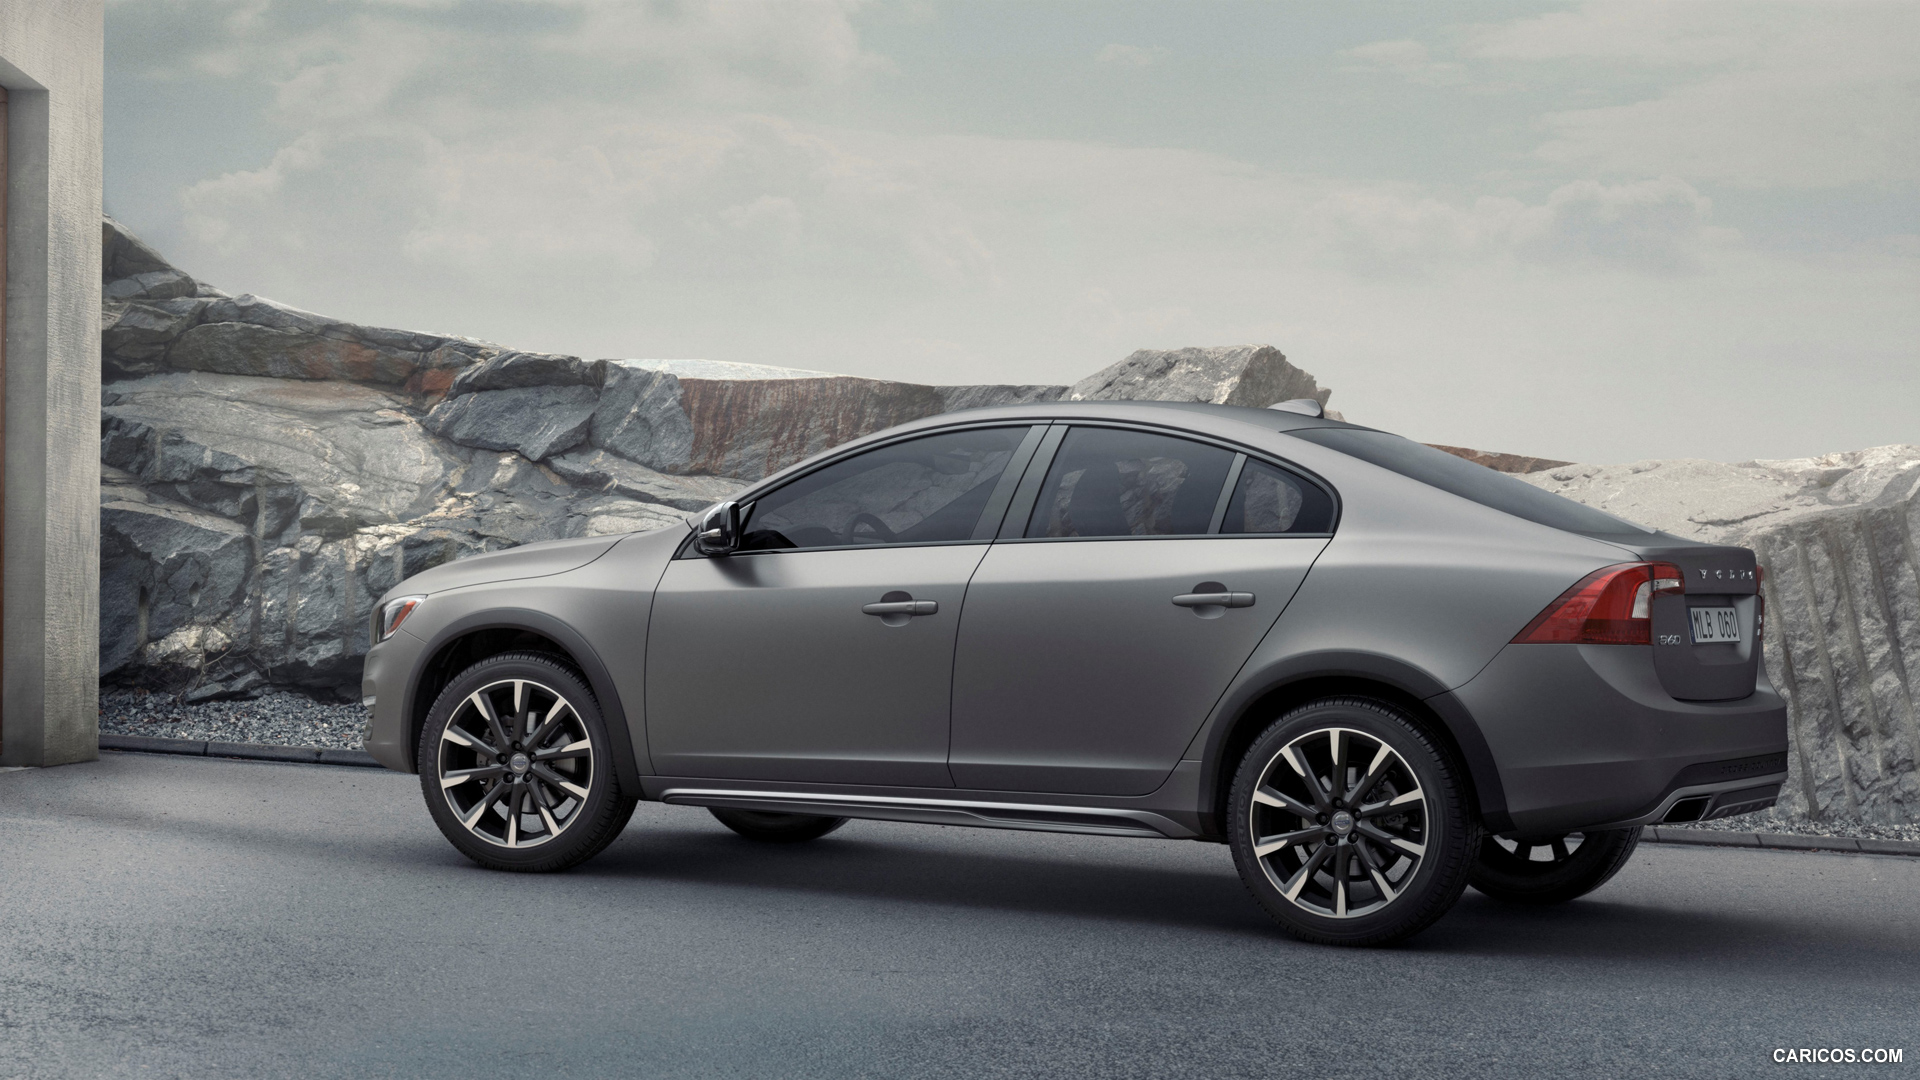 volvo s60 cross country photos photogallery with 8 pics. Black Bedroom Furniture Sets. Home Design Ideas